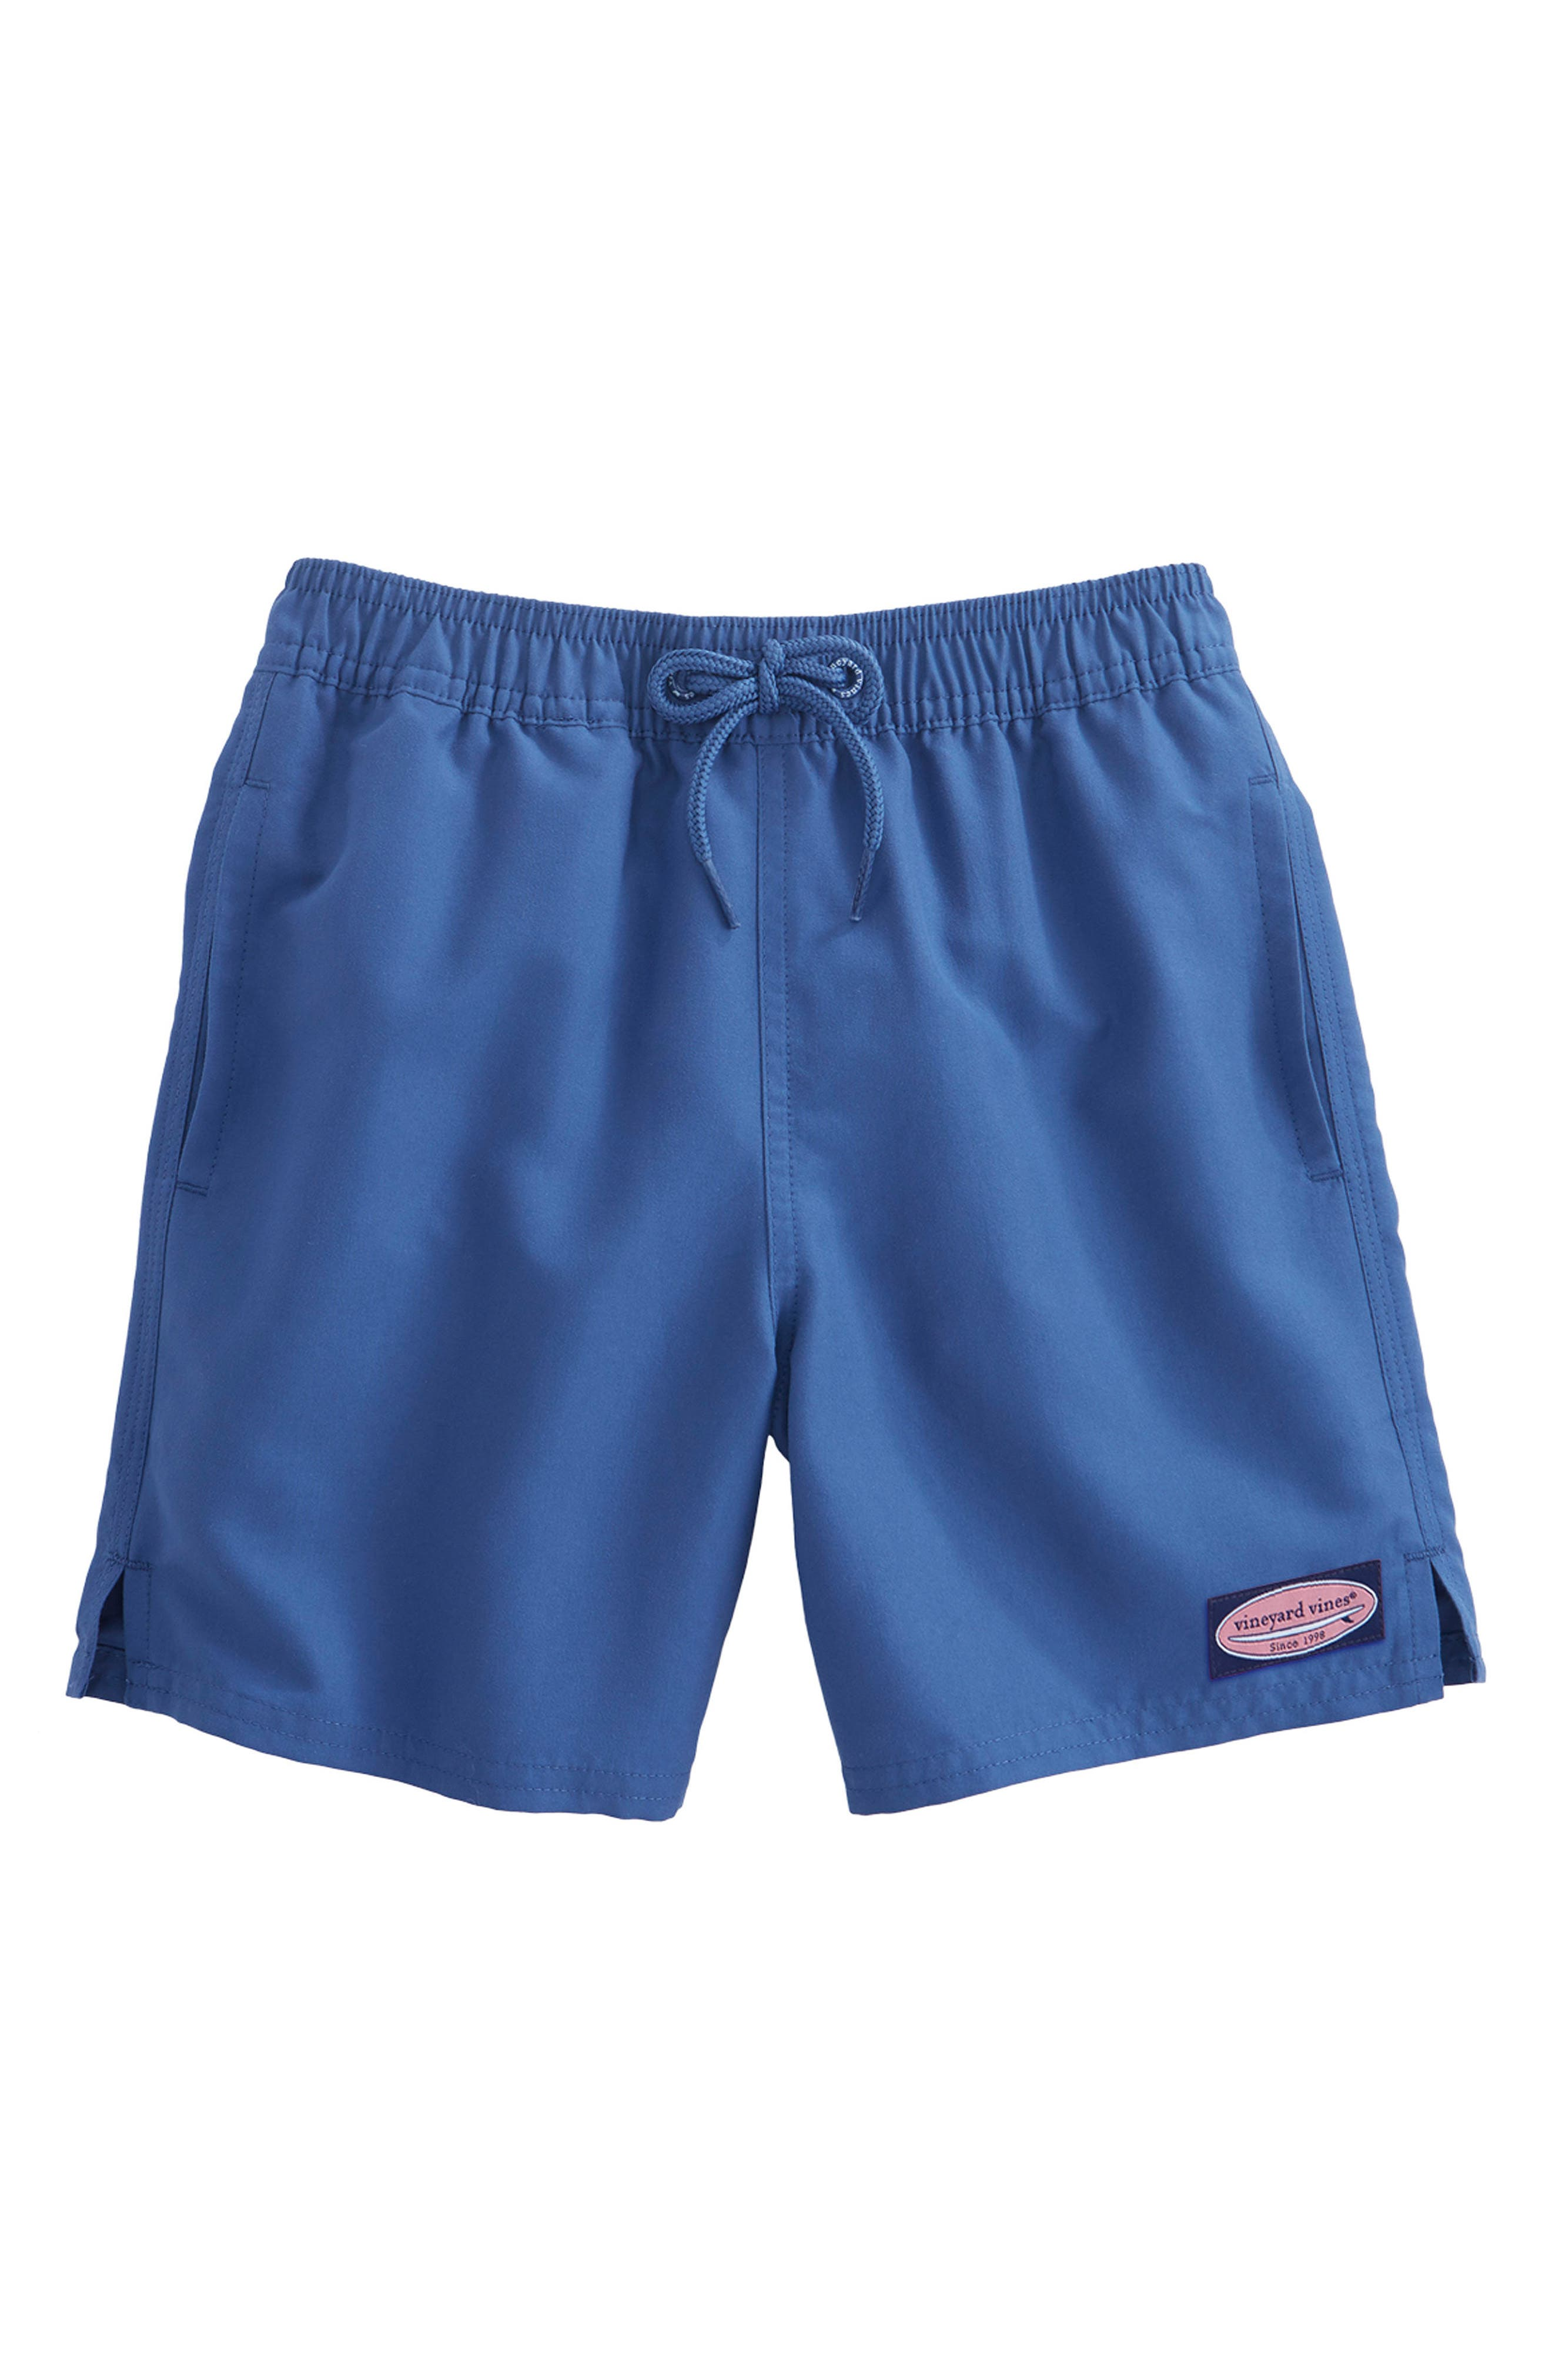 Main Image - vineyard vines Bungalow Board Shorts (Toddler Boys & Little Boys)